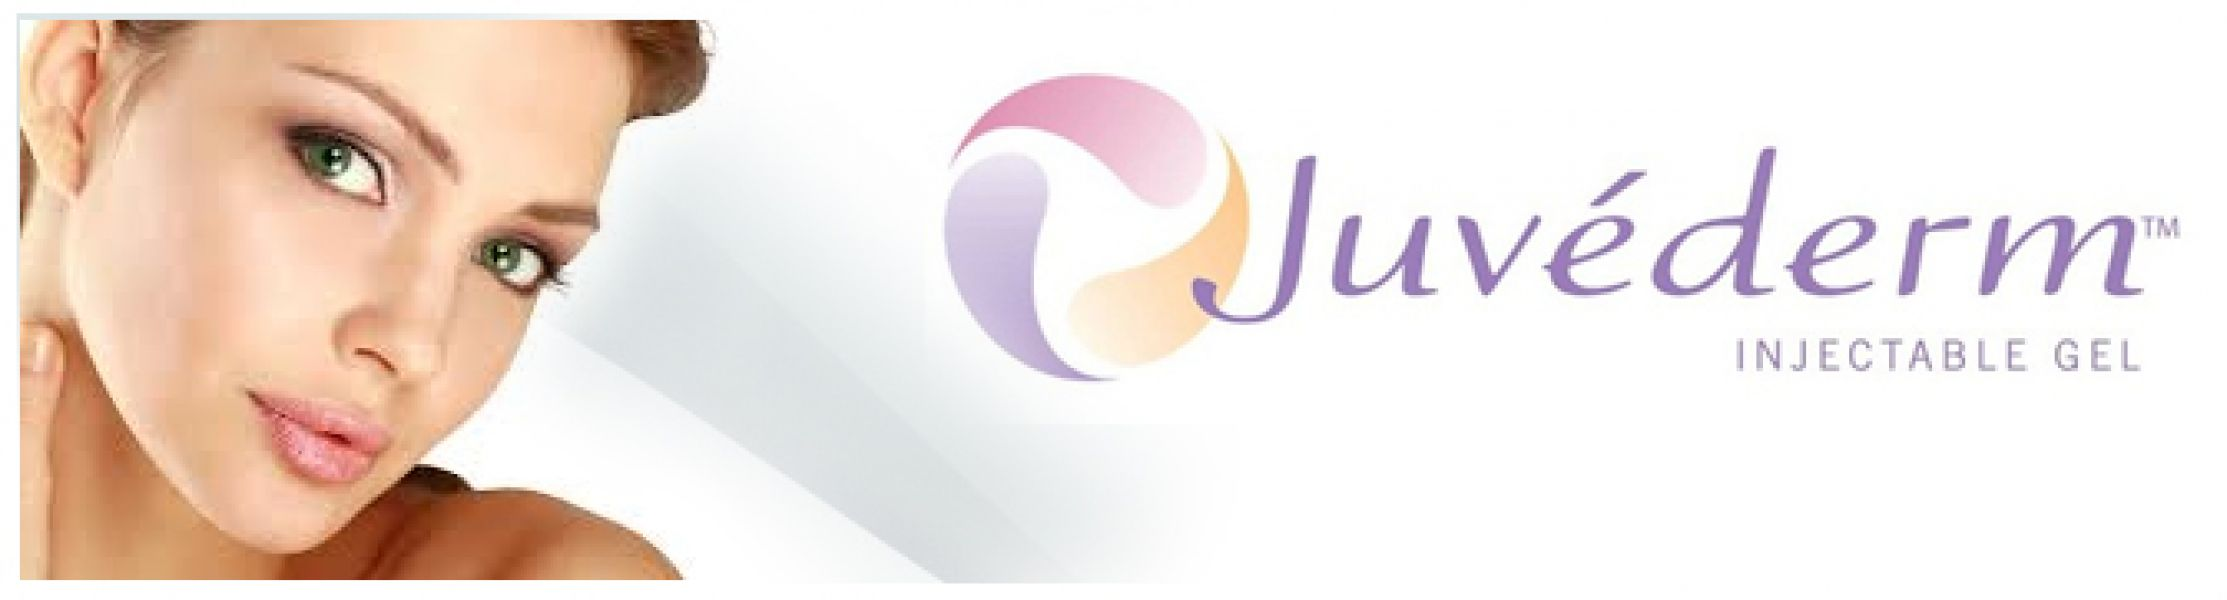 Best Juvederm Treatment in Cleveland